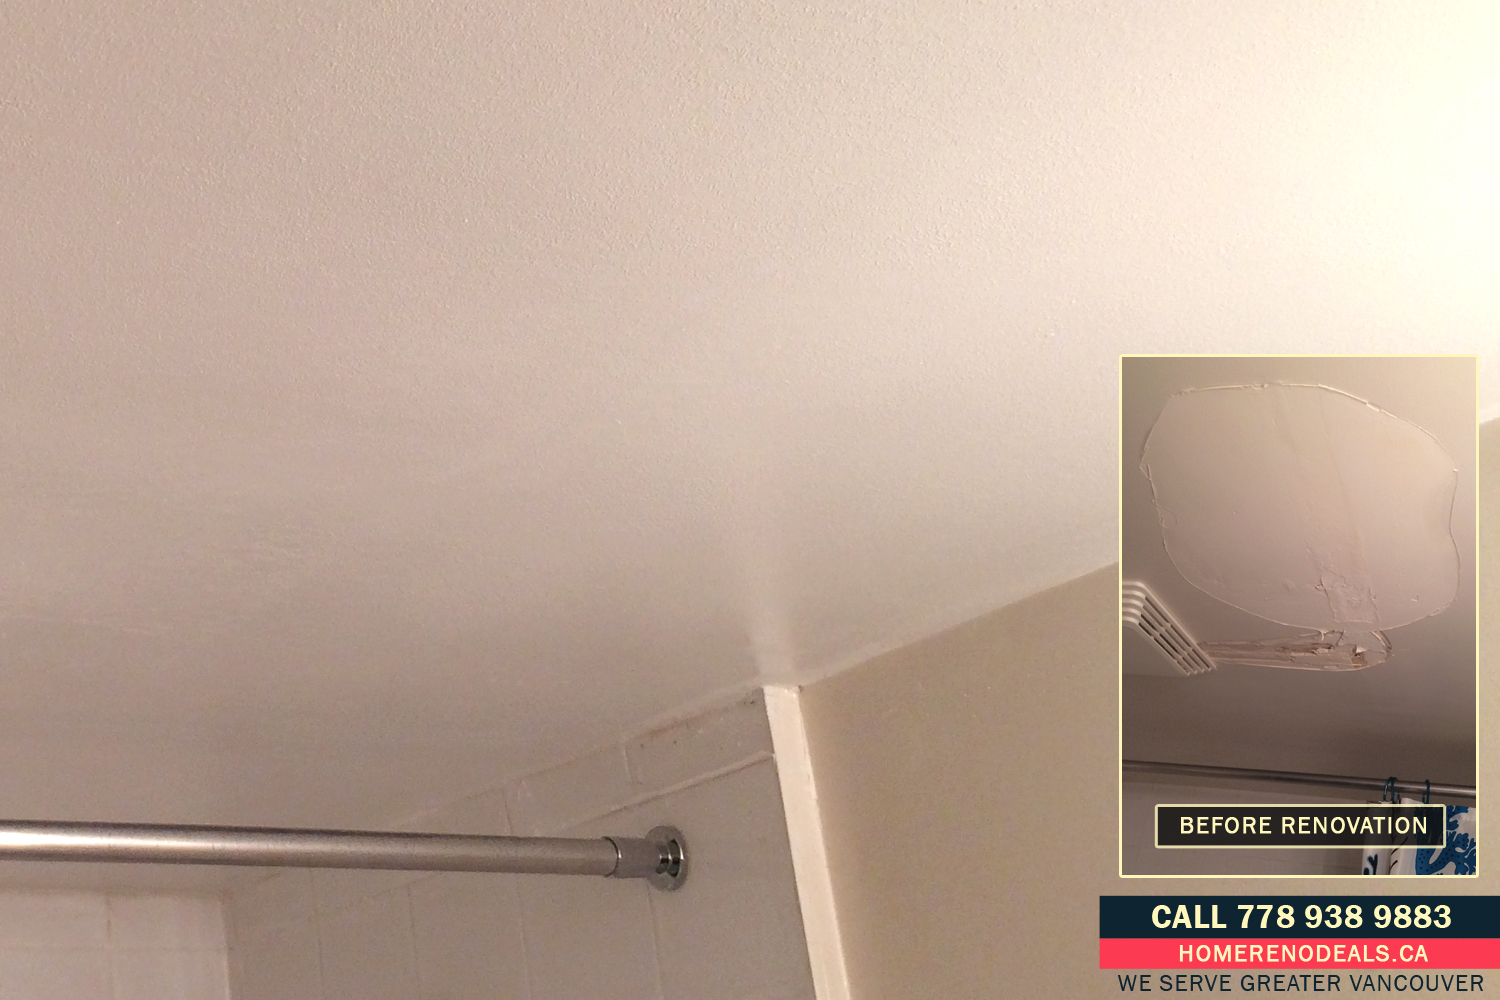 Professional and fast water damage ceiling repairs in Greater Vancouver, BC